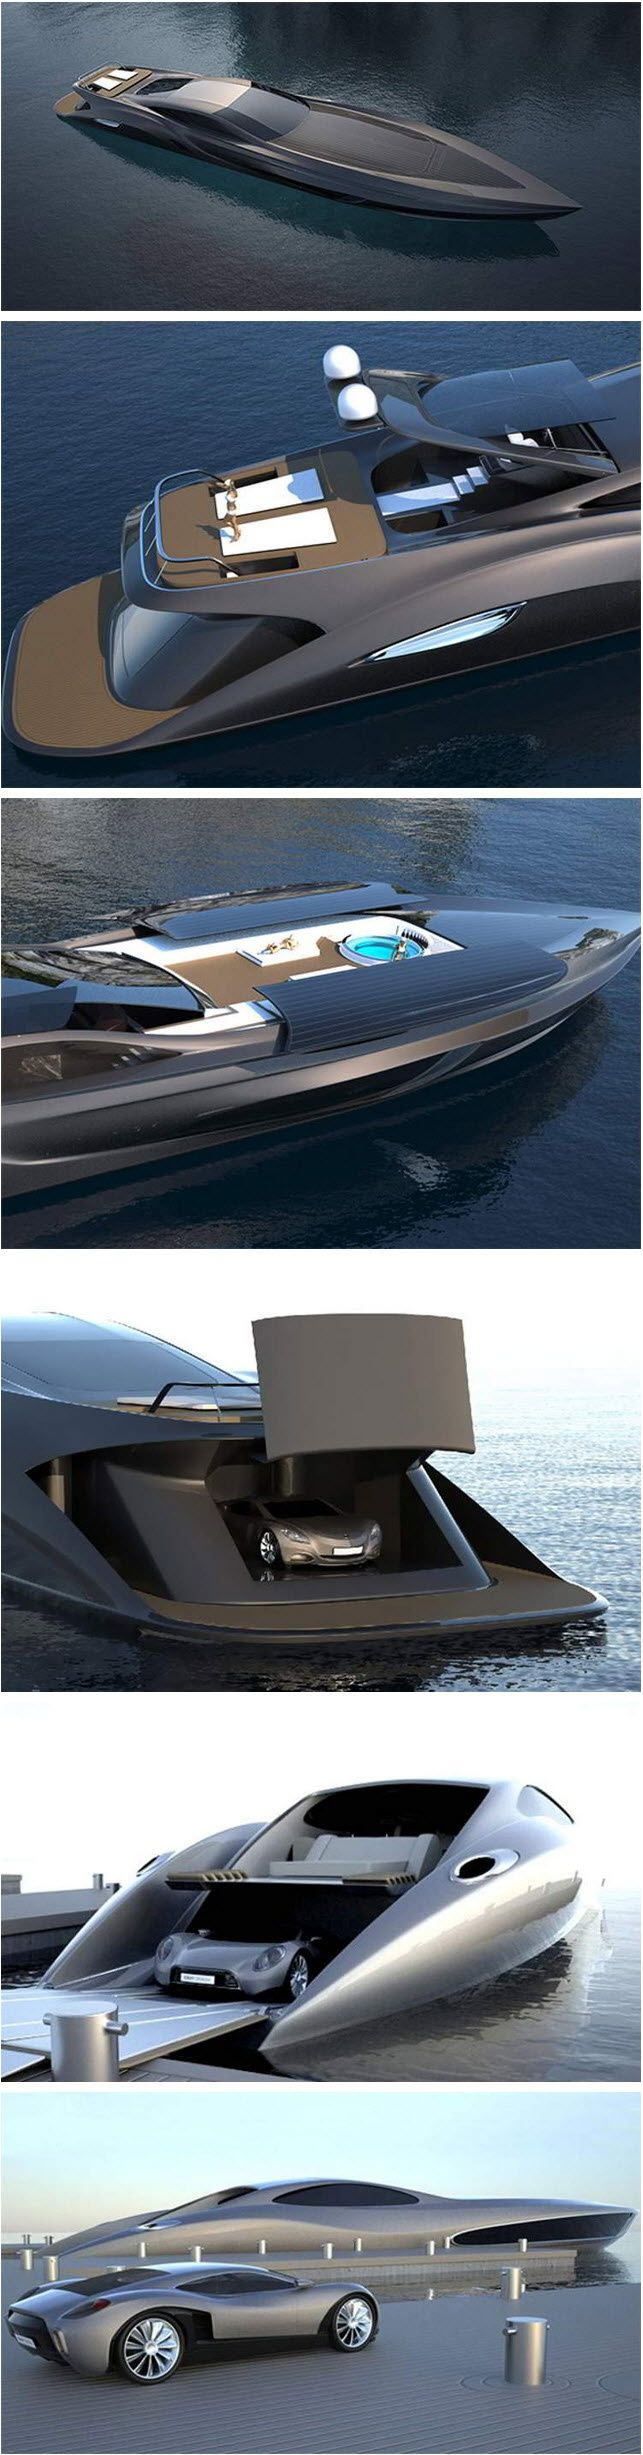 """""""Strand Craft 166 superyacht"""" so cool. See more cool boating videos here: https://www.youtube.com/user/boatshowavenue/videos"""